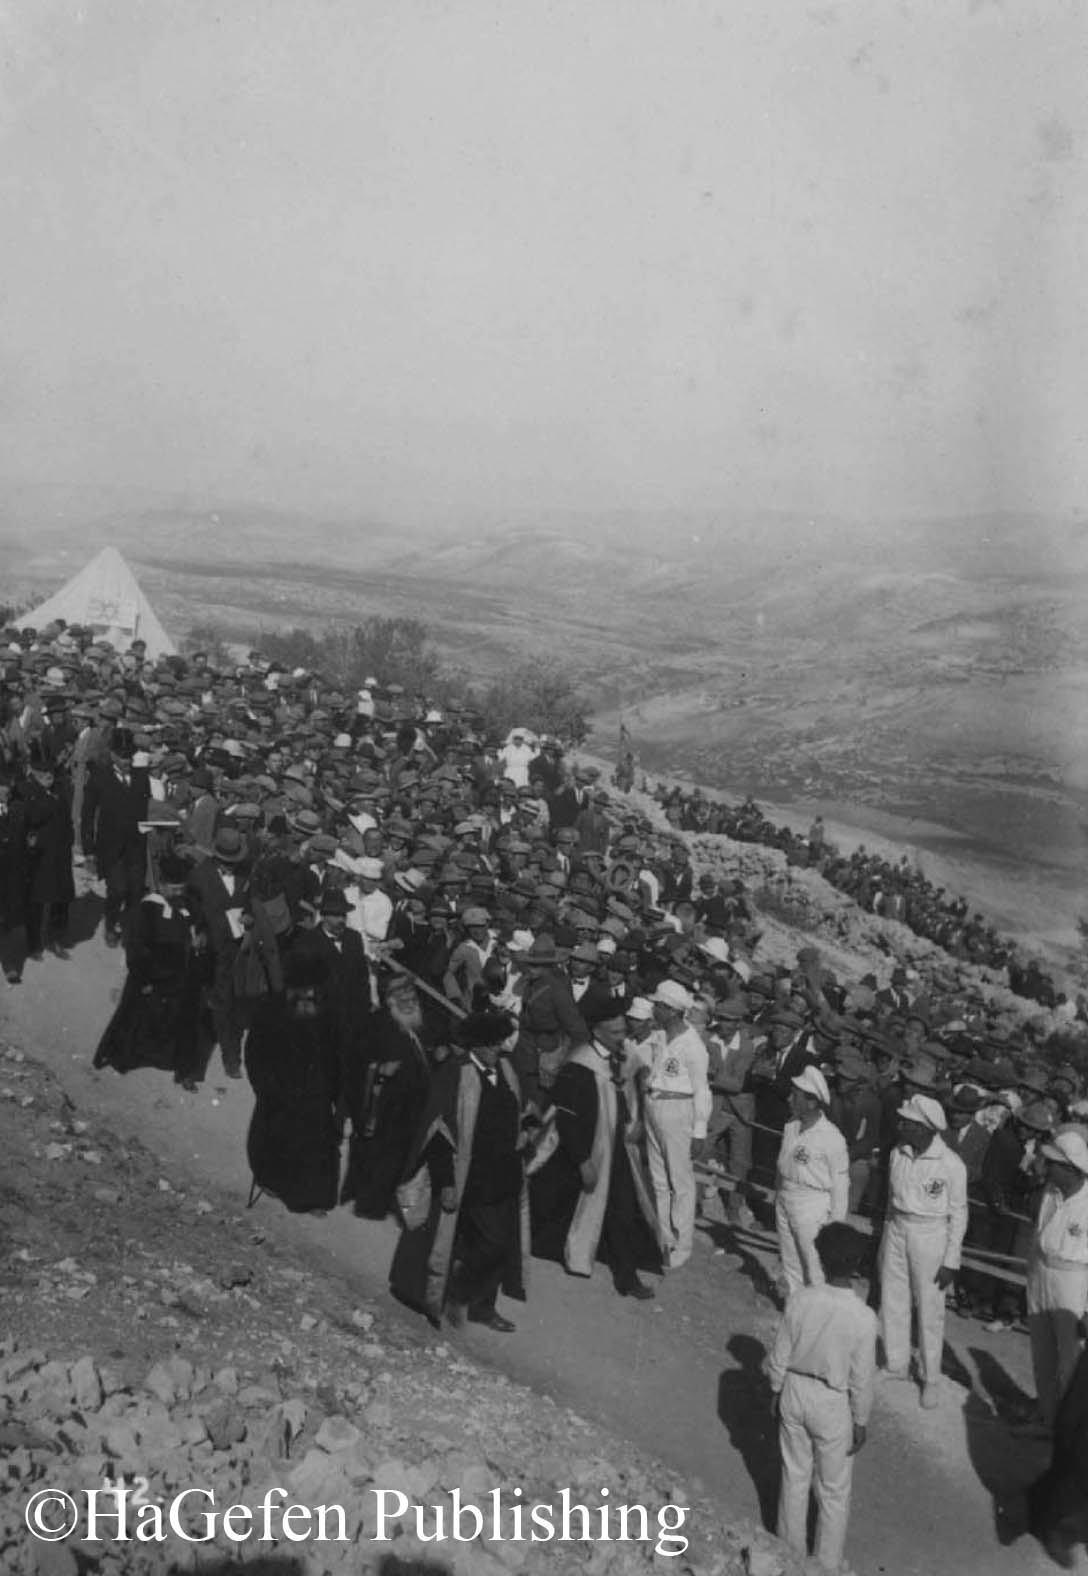 Opening of Hebrew University, 1925